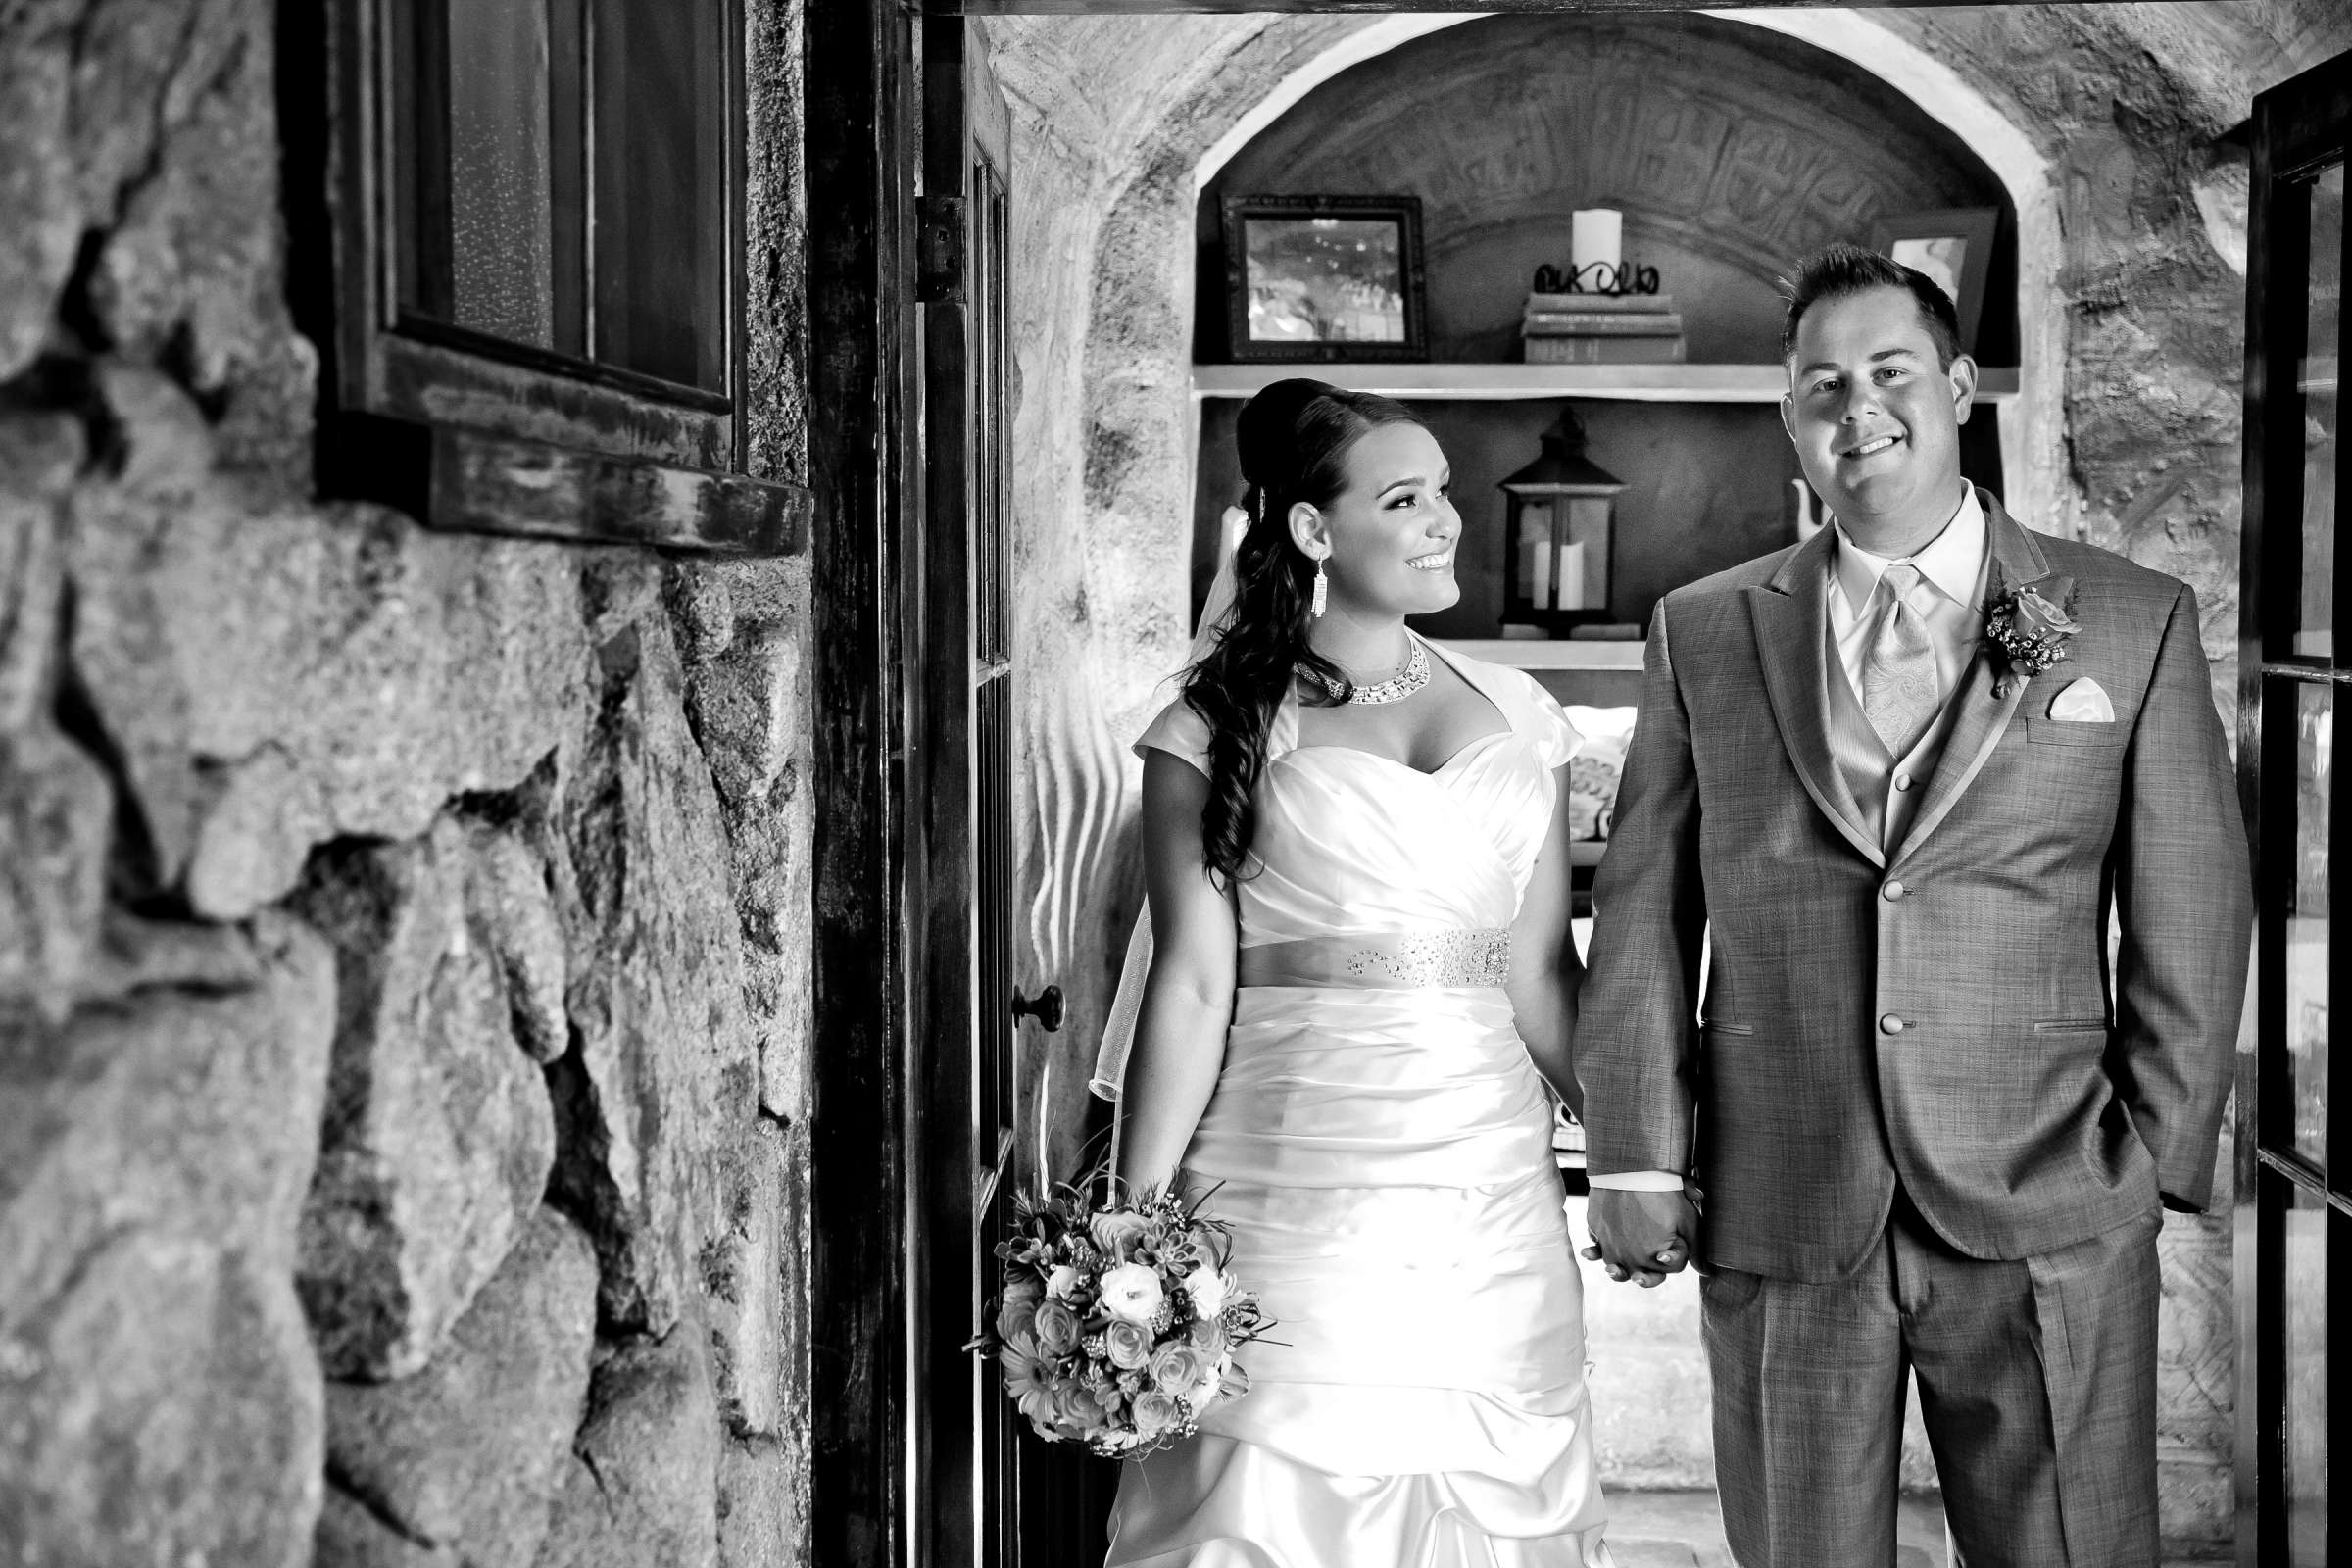 Mt Woodson Castle Wedding, Krista and Donald Wedding Photo #344664 by True Photography